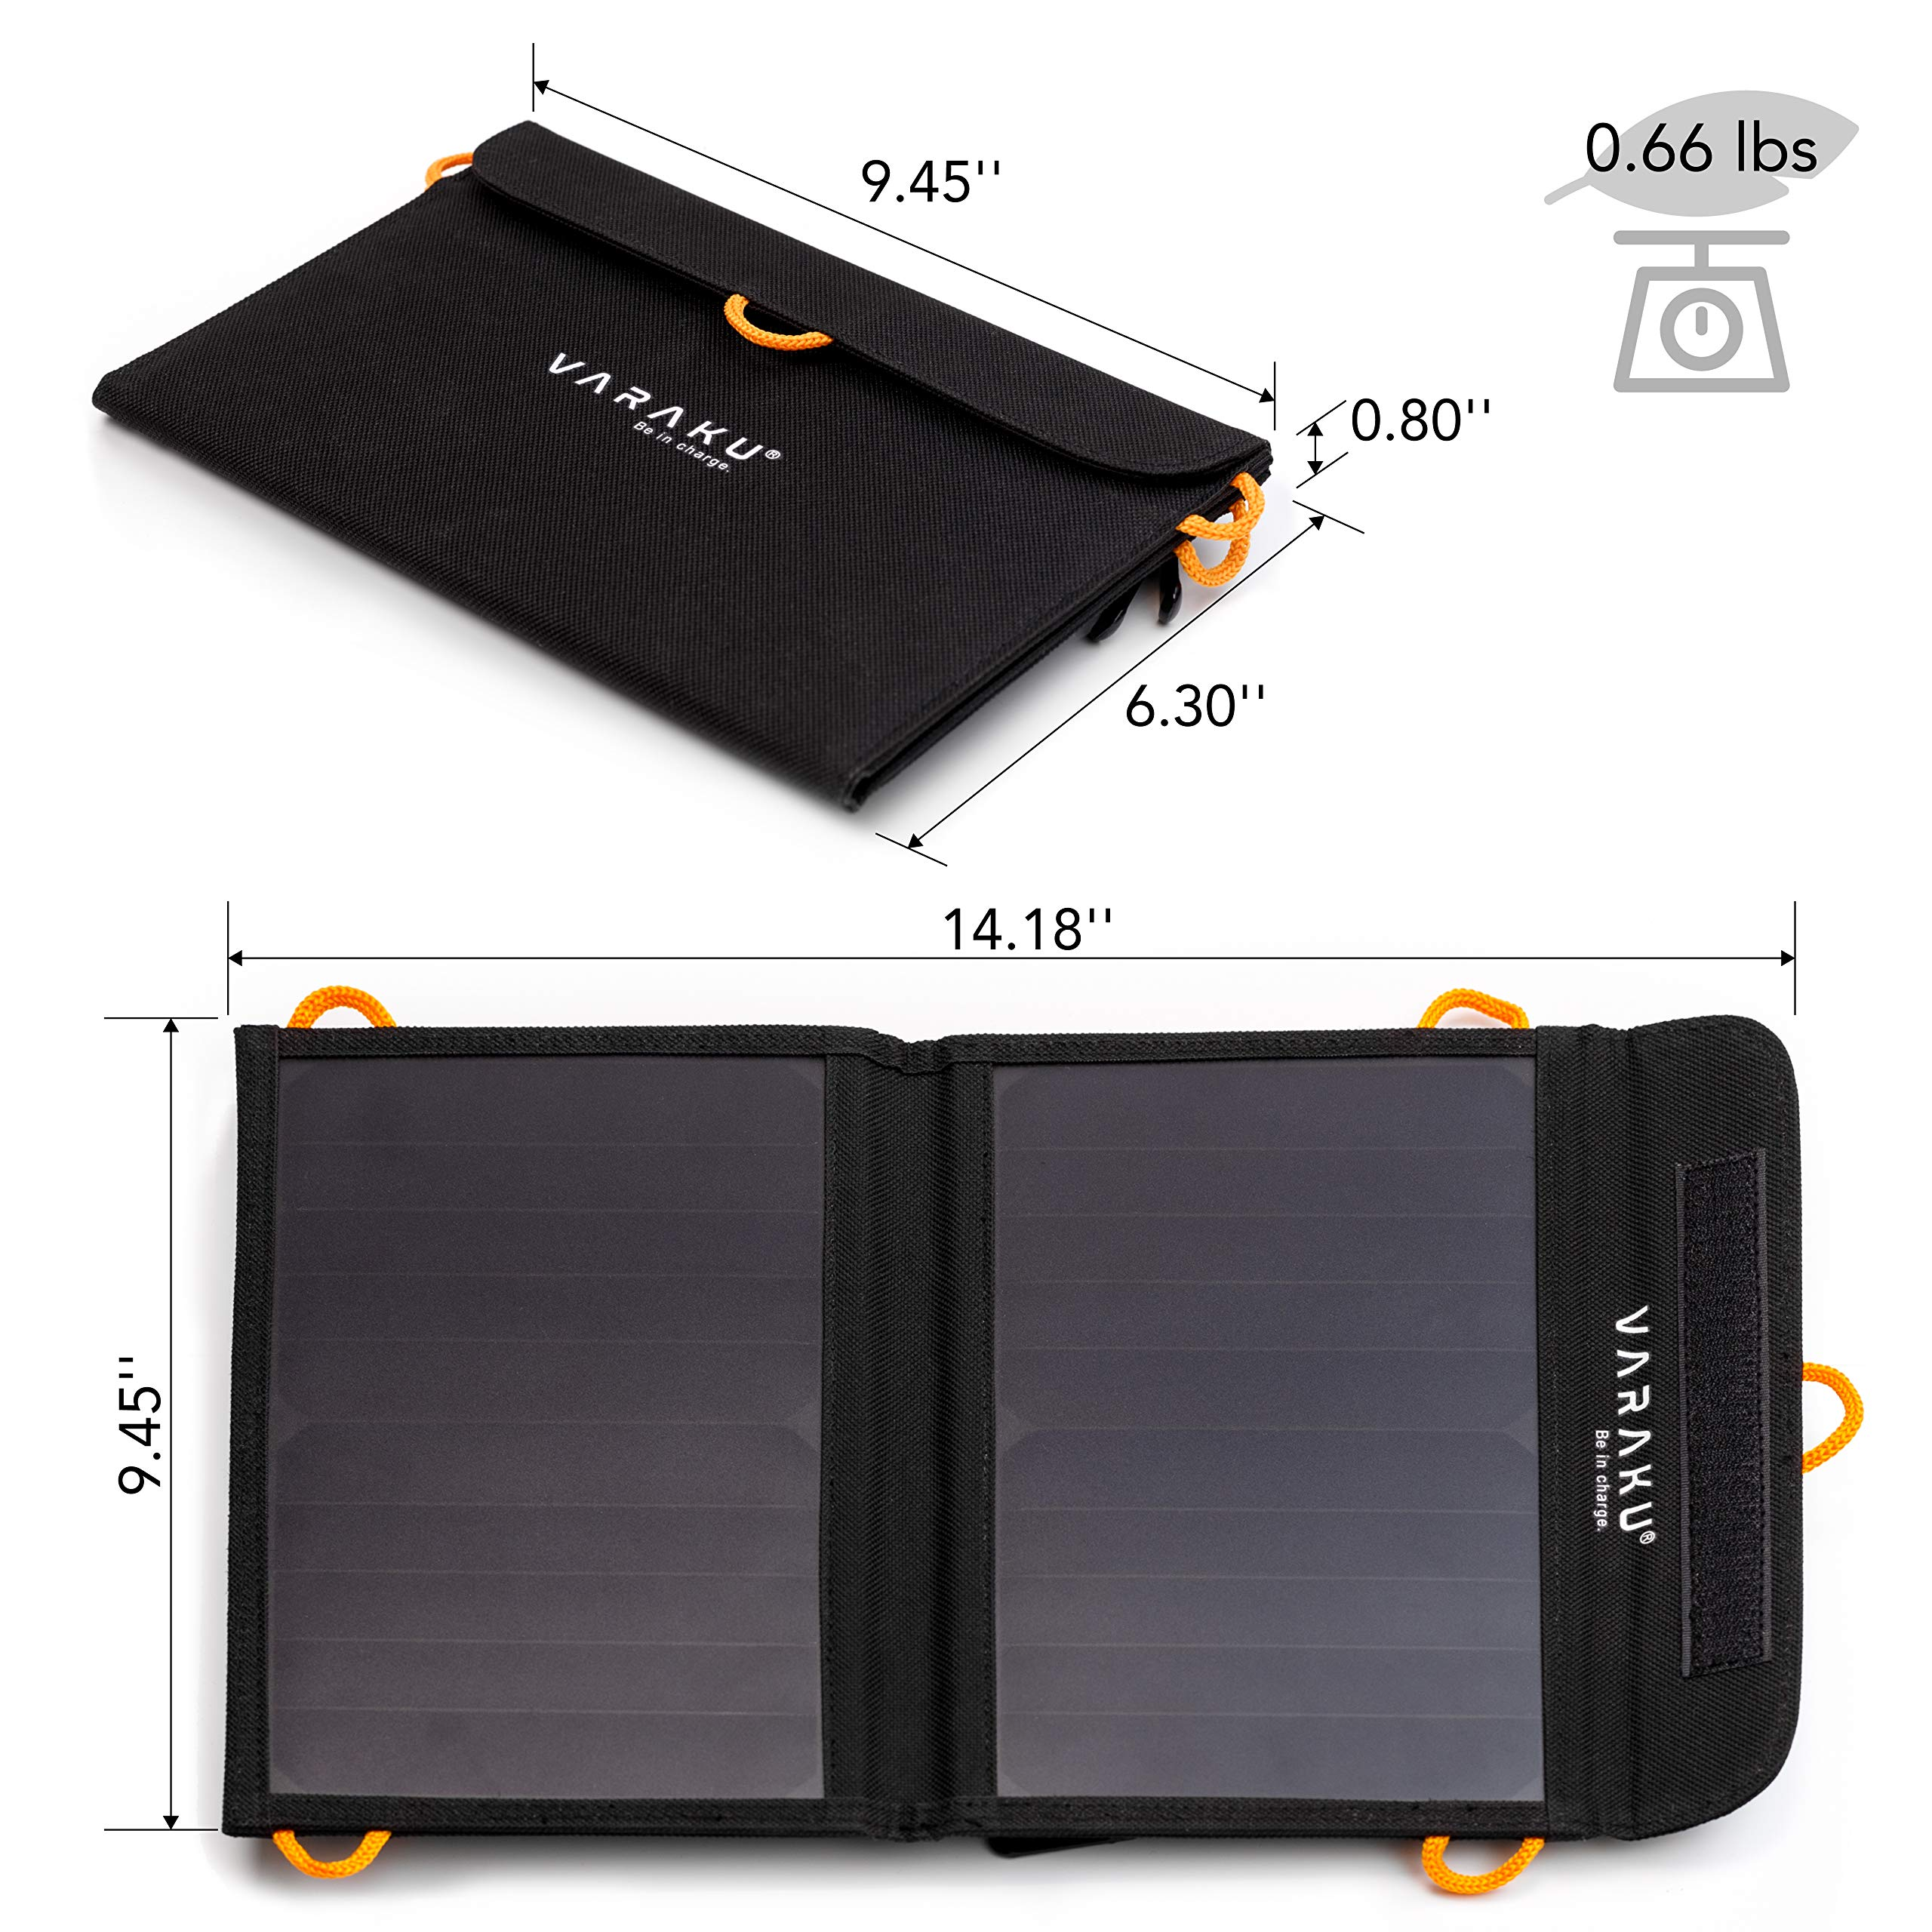 Portable Solar Charger 10W - Dual USB Solar Panel Foldable – Best Power for, iPhone, X, 8, 7, 6s, iPad, Cell Phone Android & Electronic Devices - Waterproof Sun Phone Charger for Camping & Hiking by VARAKU (Image #4)